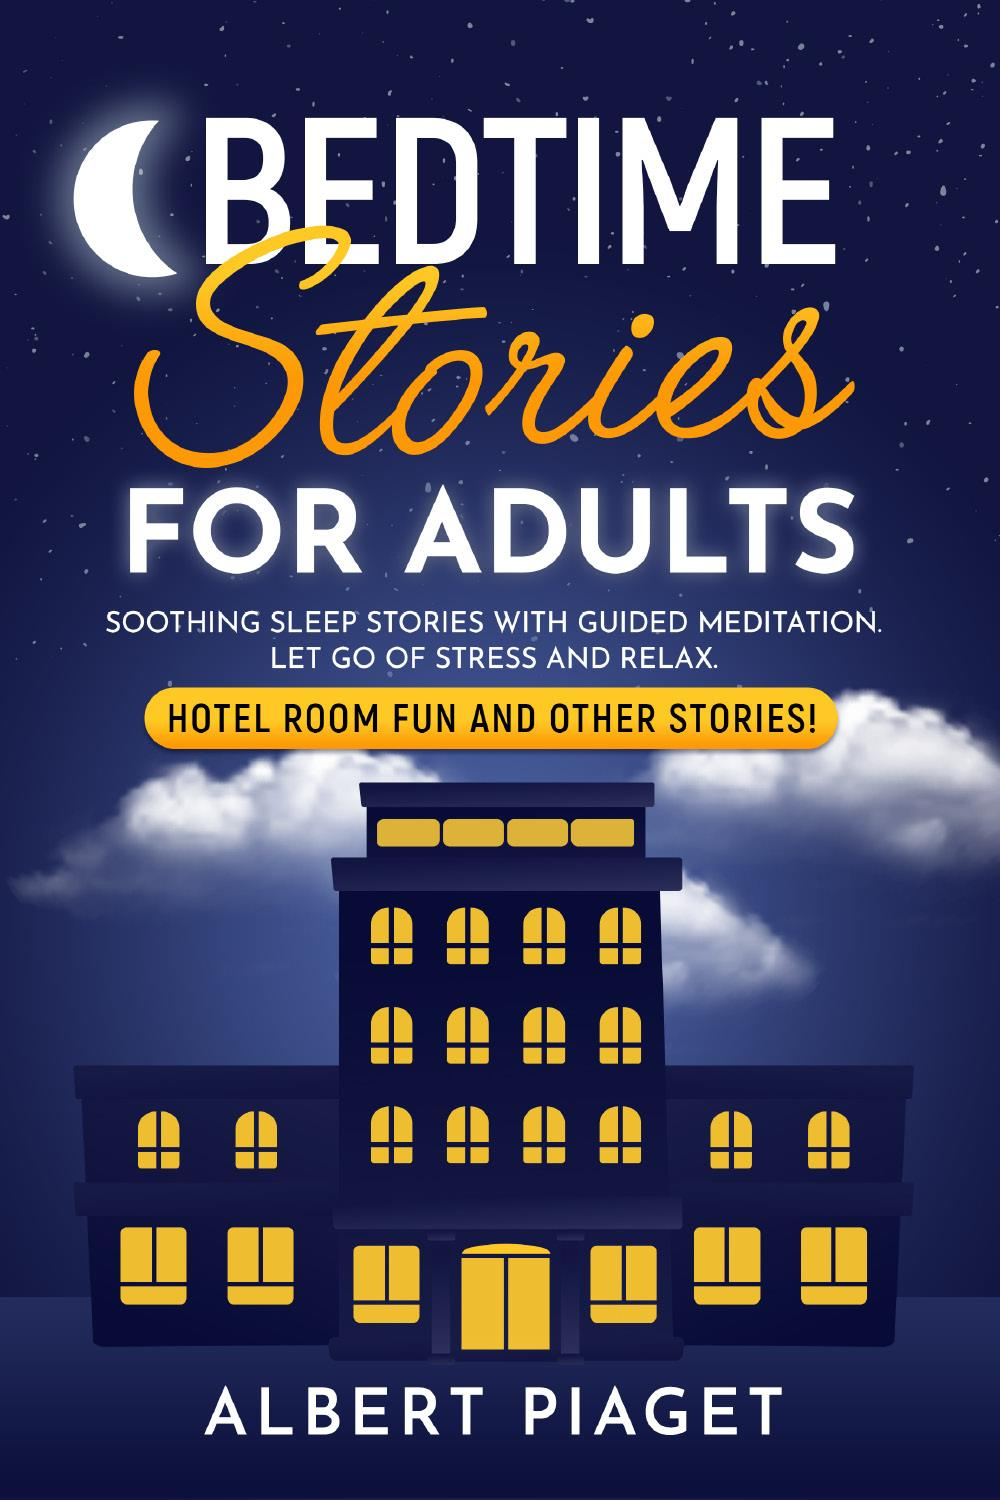 Bedtime Stories for Adults. Soothing Sleep Stories with Guided Meditation. Let Go of Stress and Relax. Hotel Room Fun and other stories!